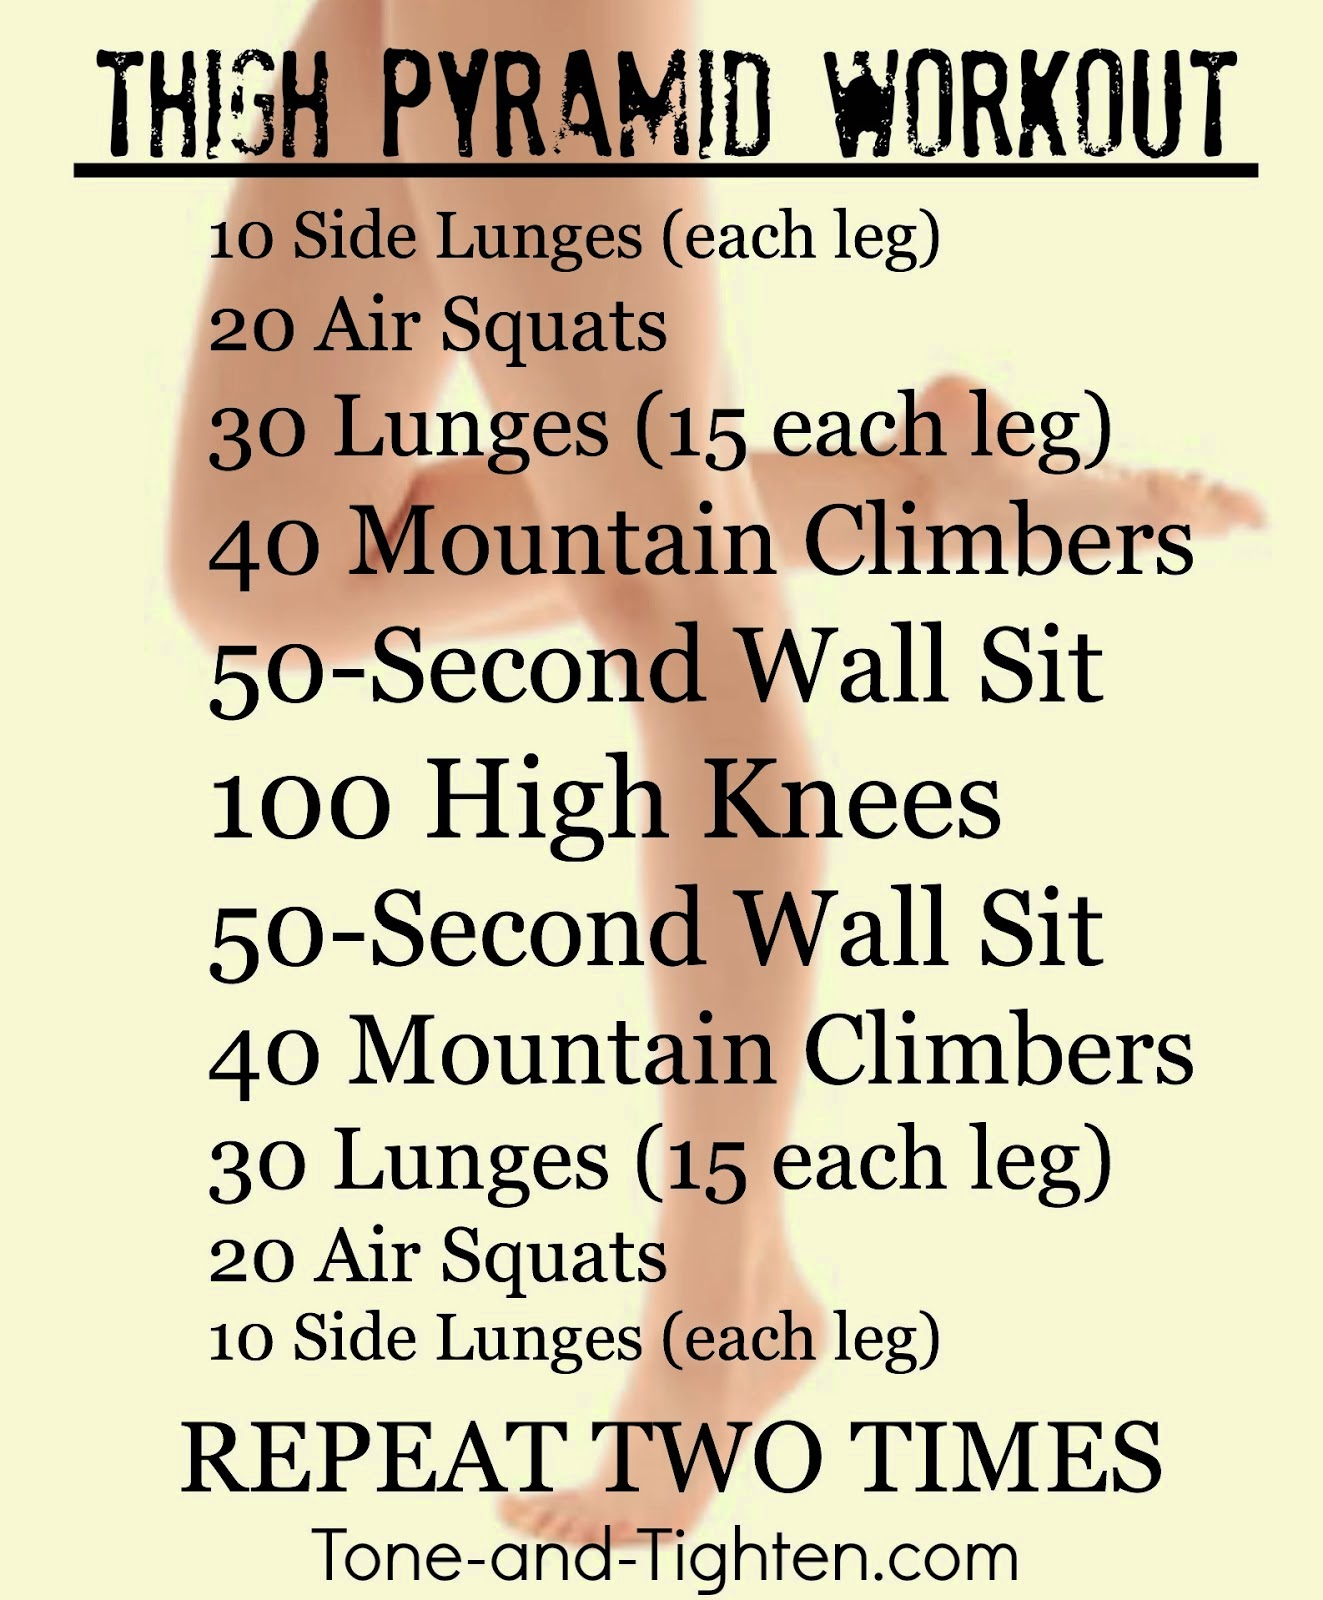 https://tone-and-tighten.com/2014/01/thigh-pyramid-workout.html